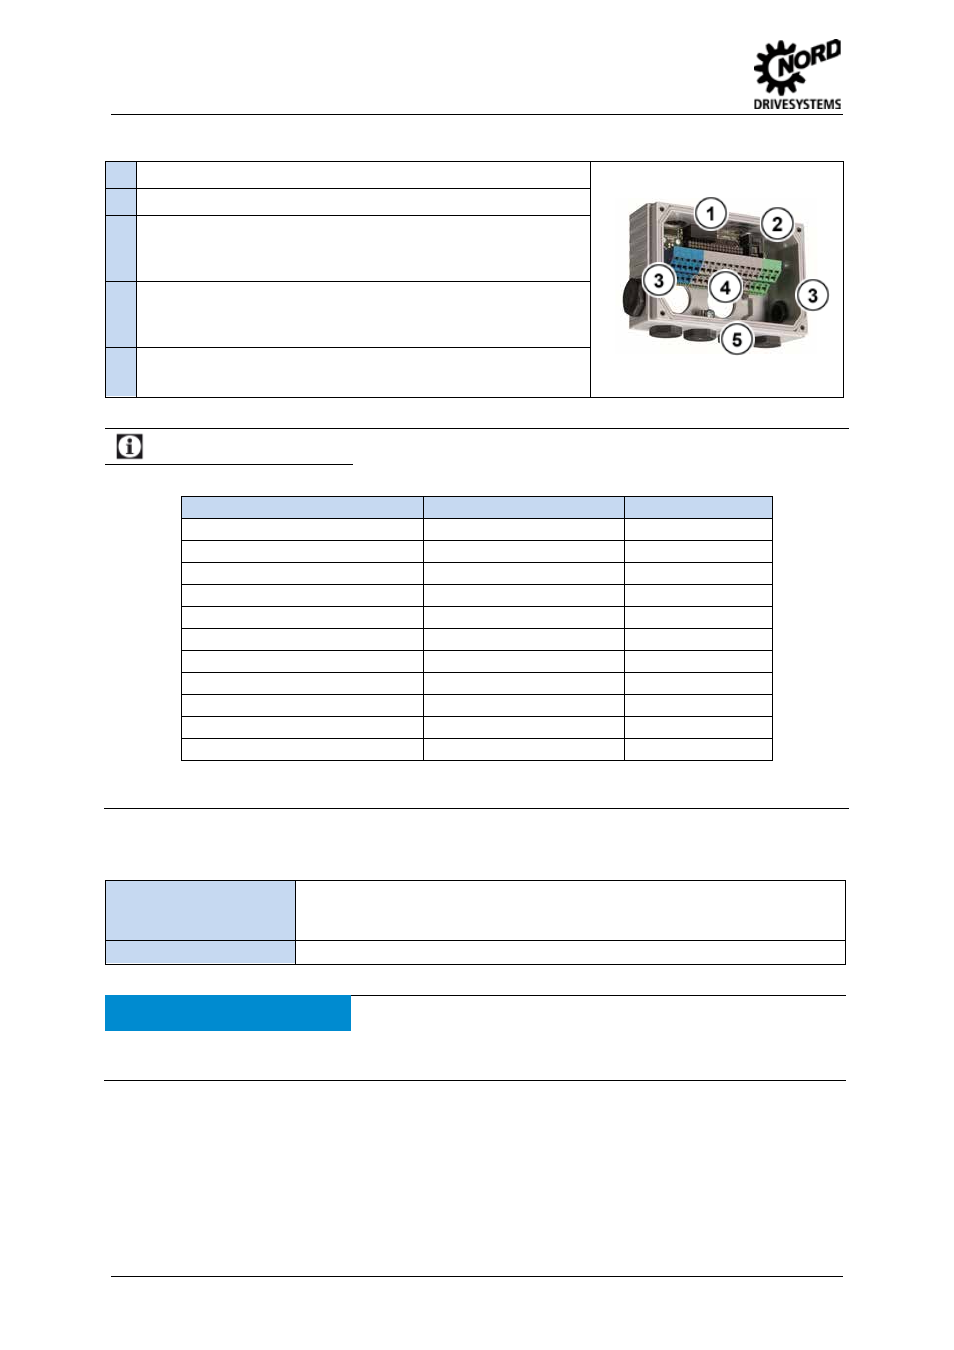 Features, Installation, Information | NORD Drivesystems TI 275280000 User  Manual | Page 2 / 4